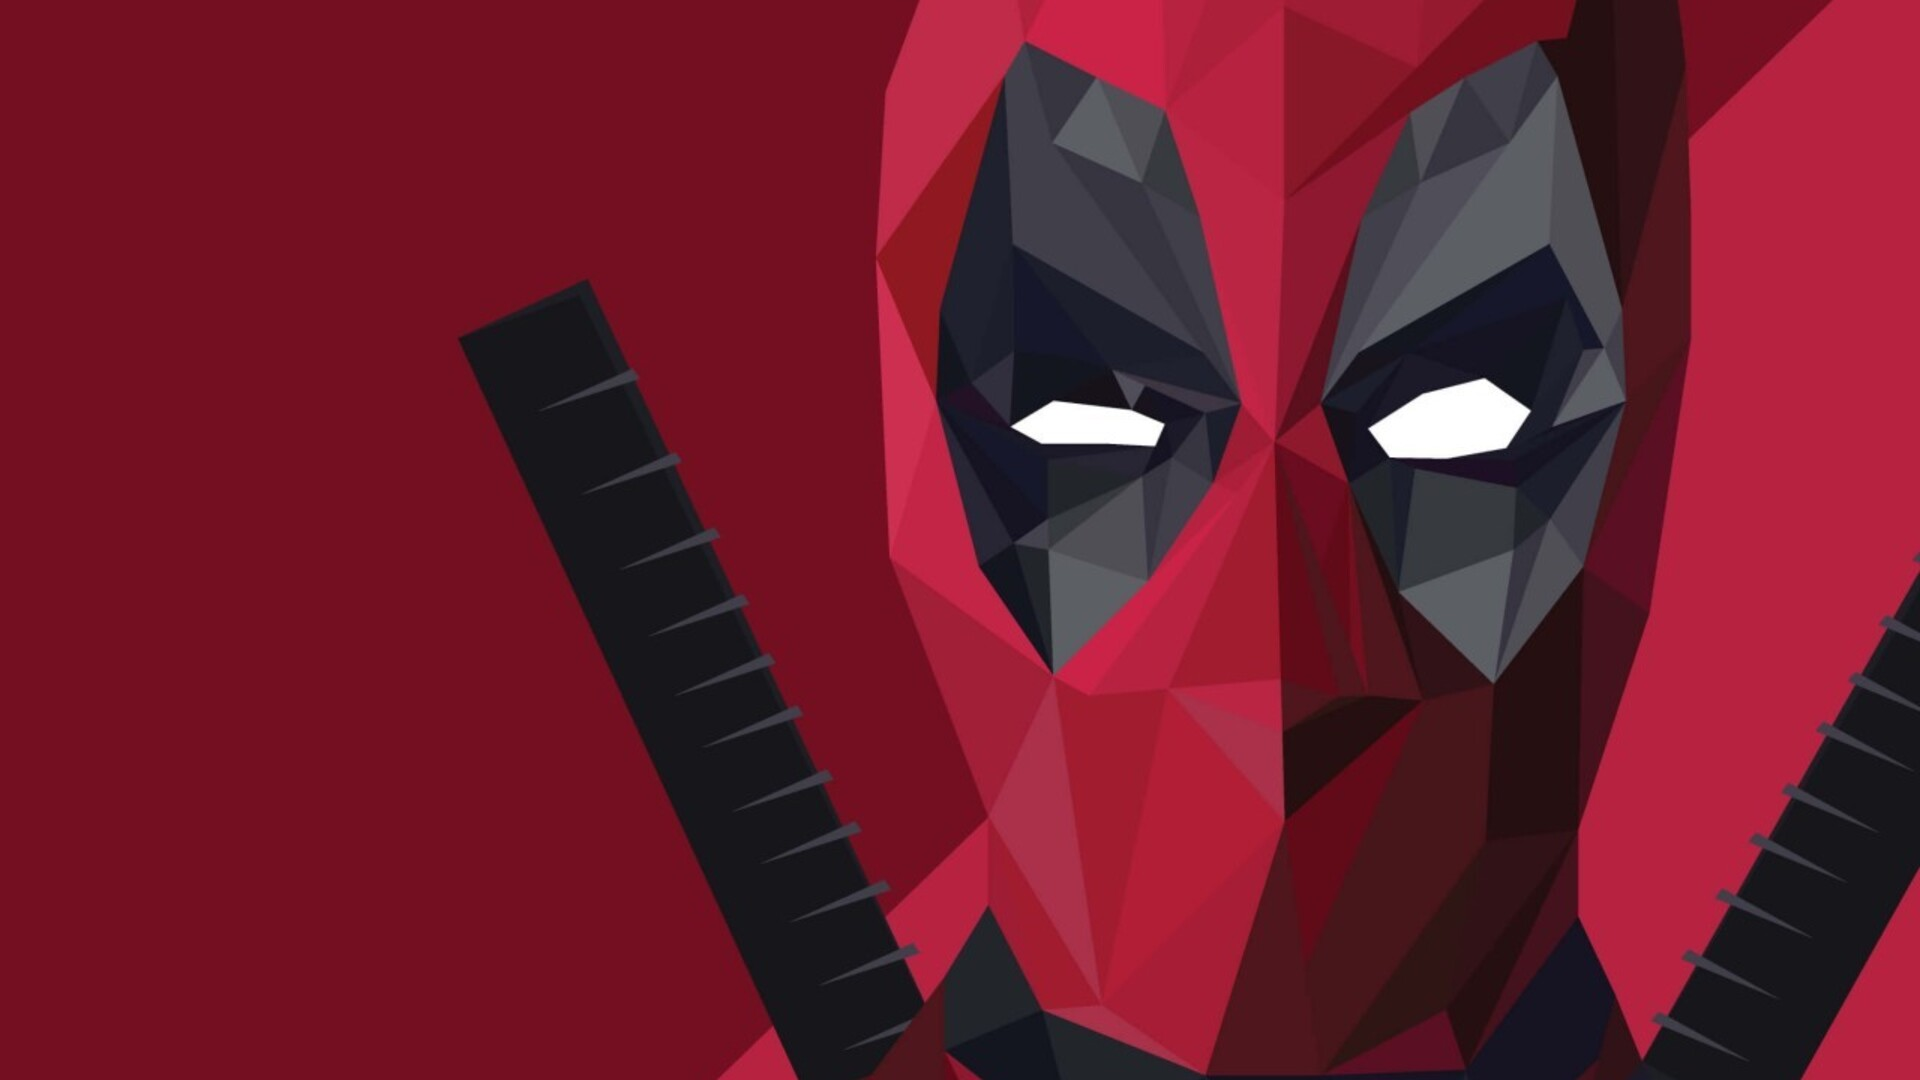 Cute Wallpapers  1920x1080 Deadpool Abstract Art Laptop Full Hd 1080p Hd 4k